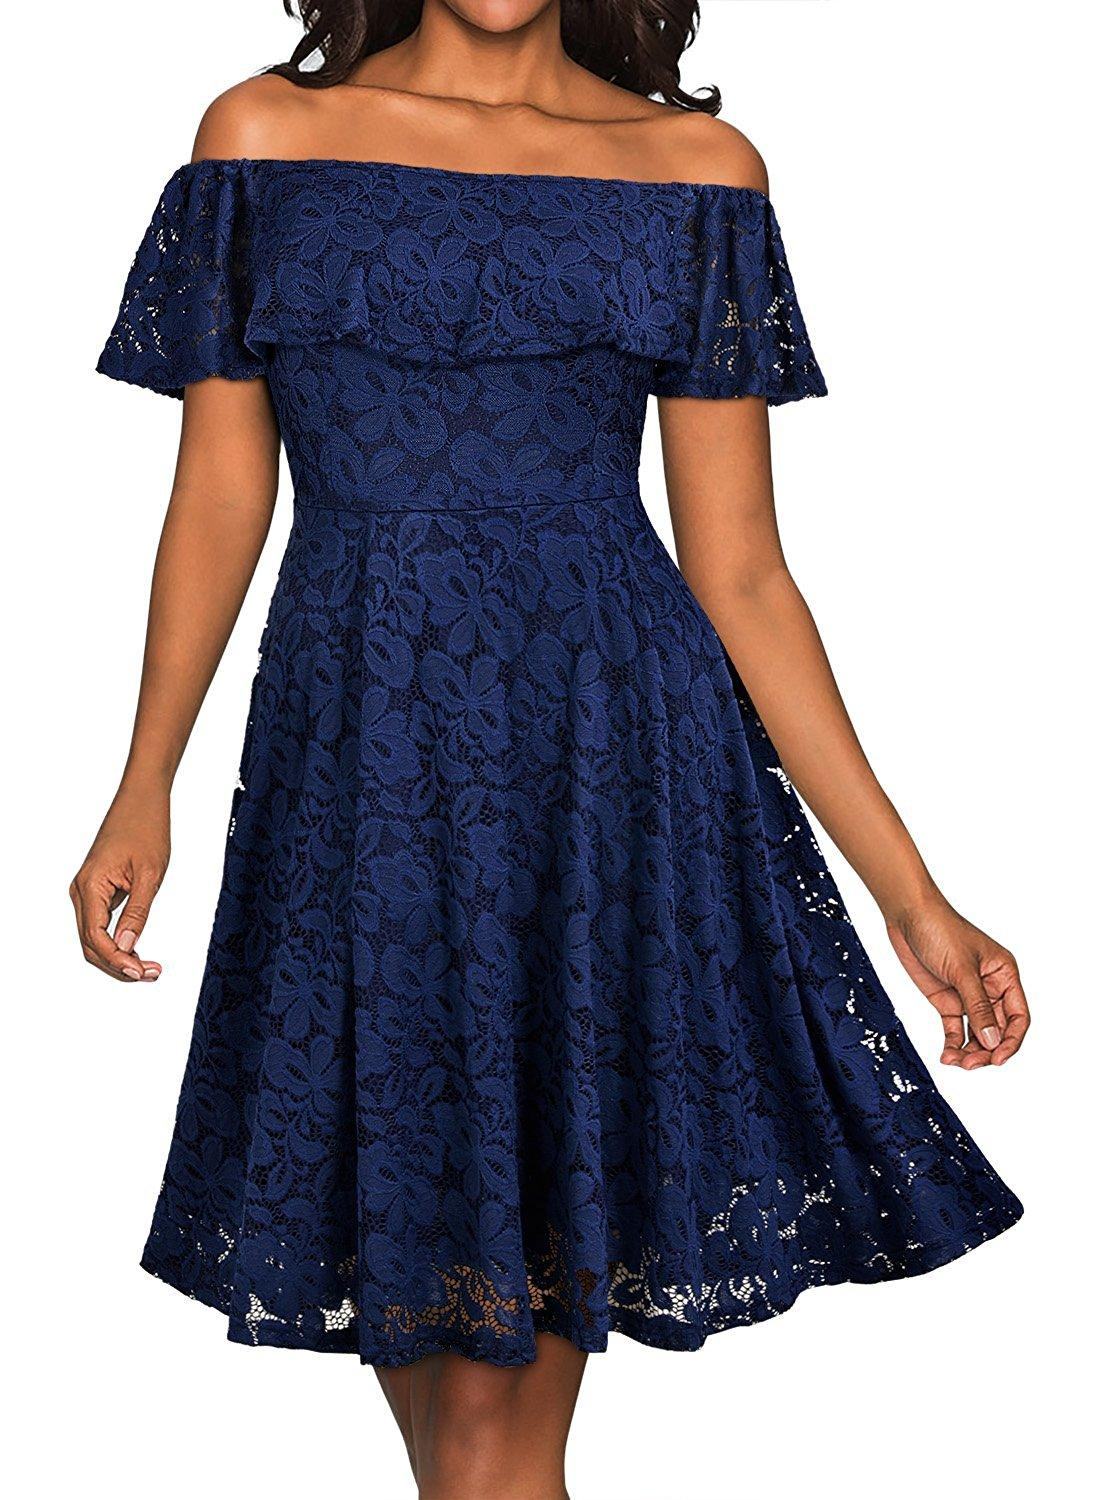 Women\'S Casual Off Shoulder Floral Lace Party Swing Dress 1950s ...